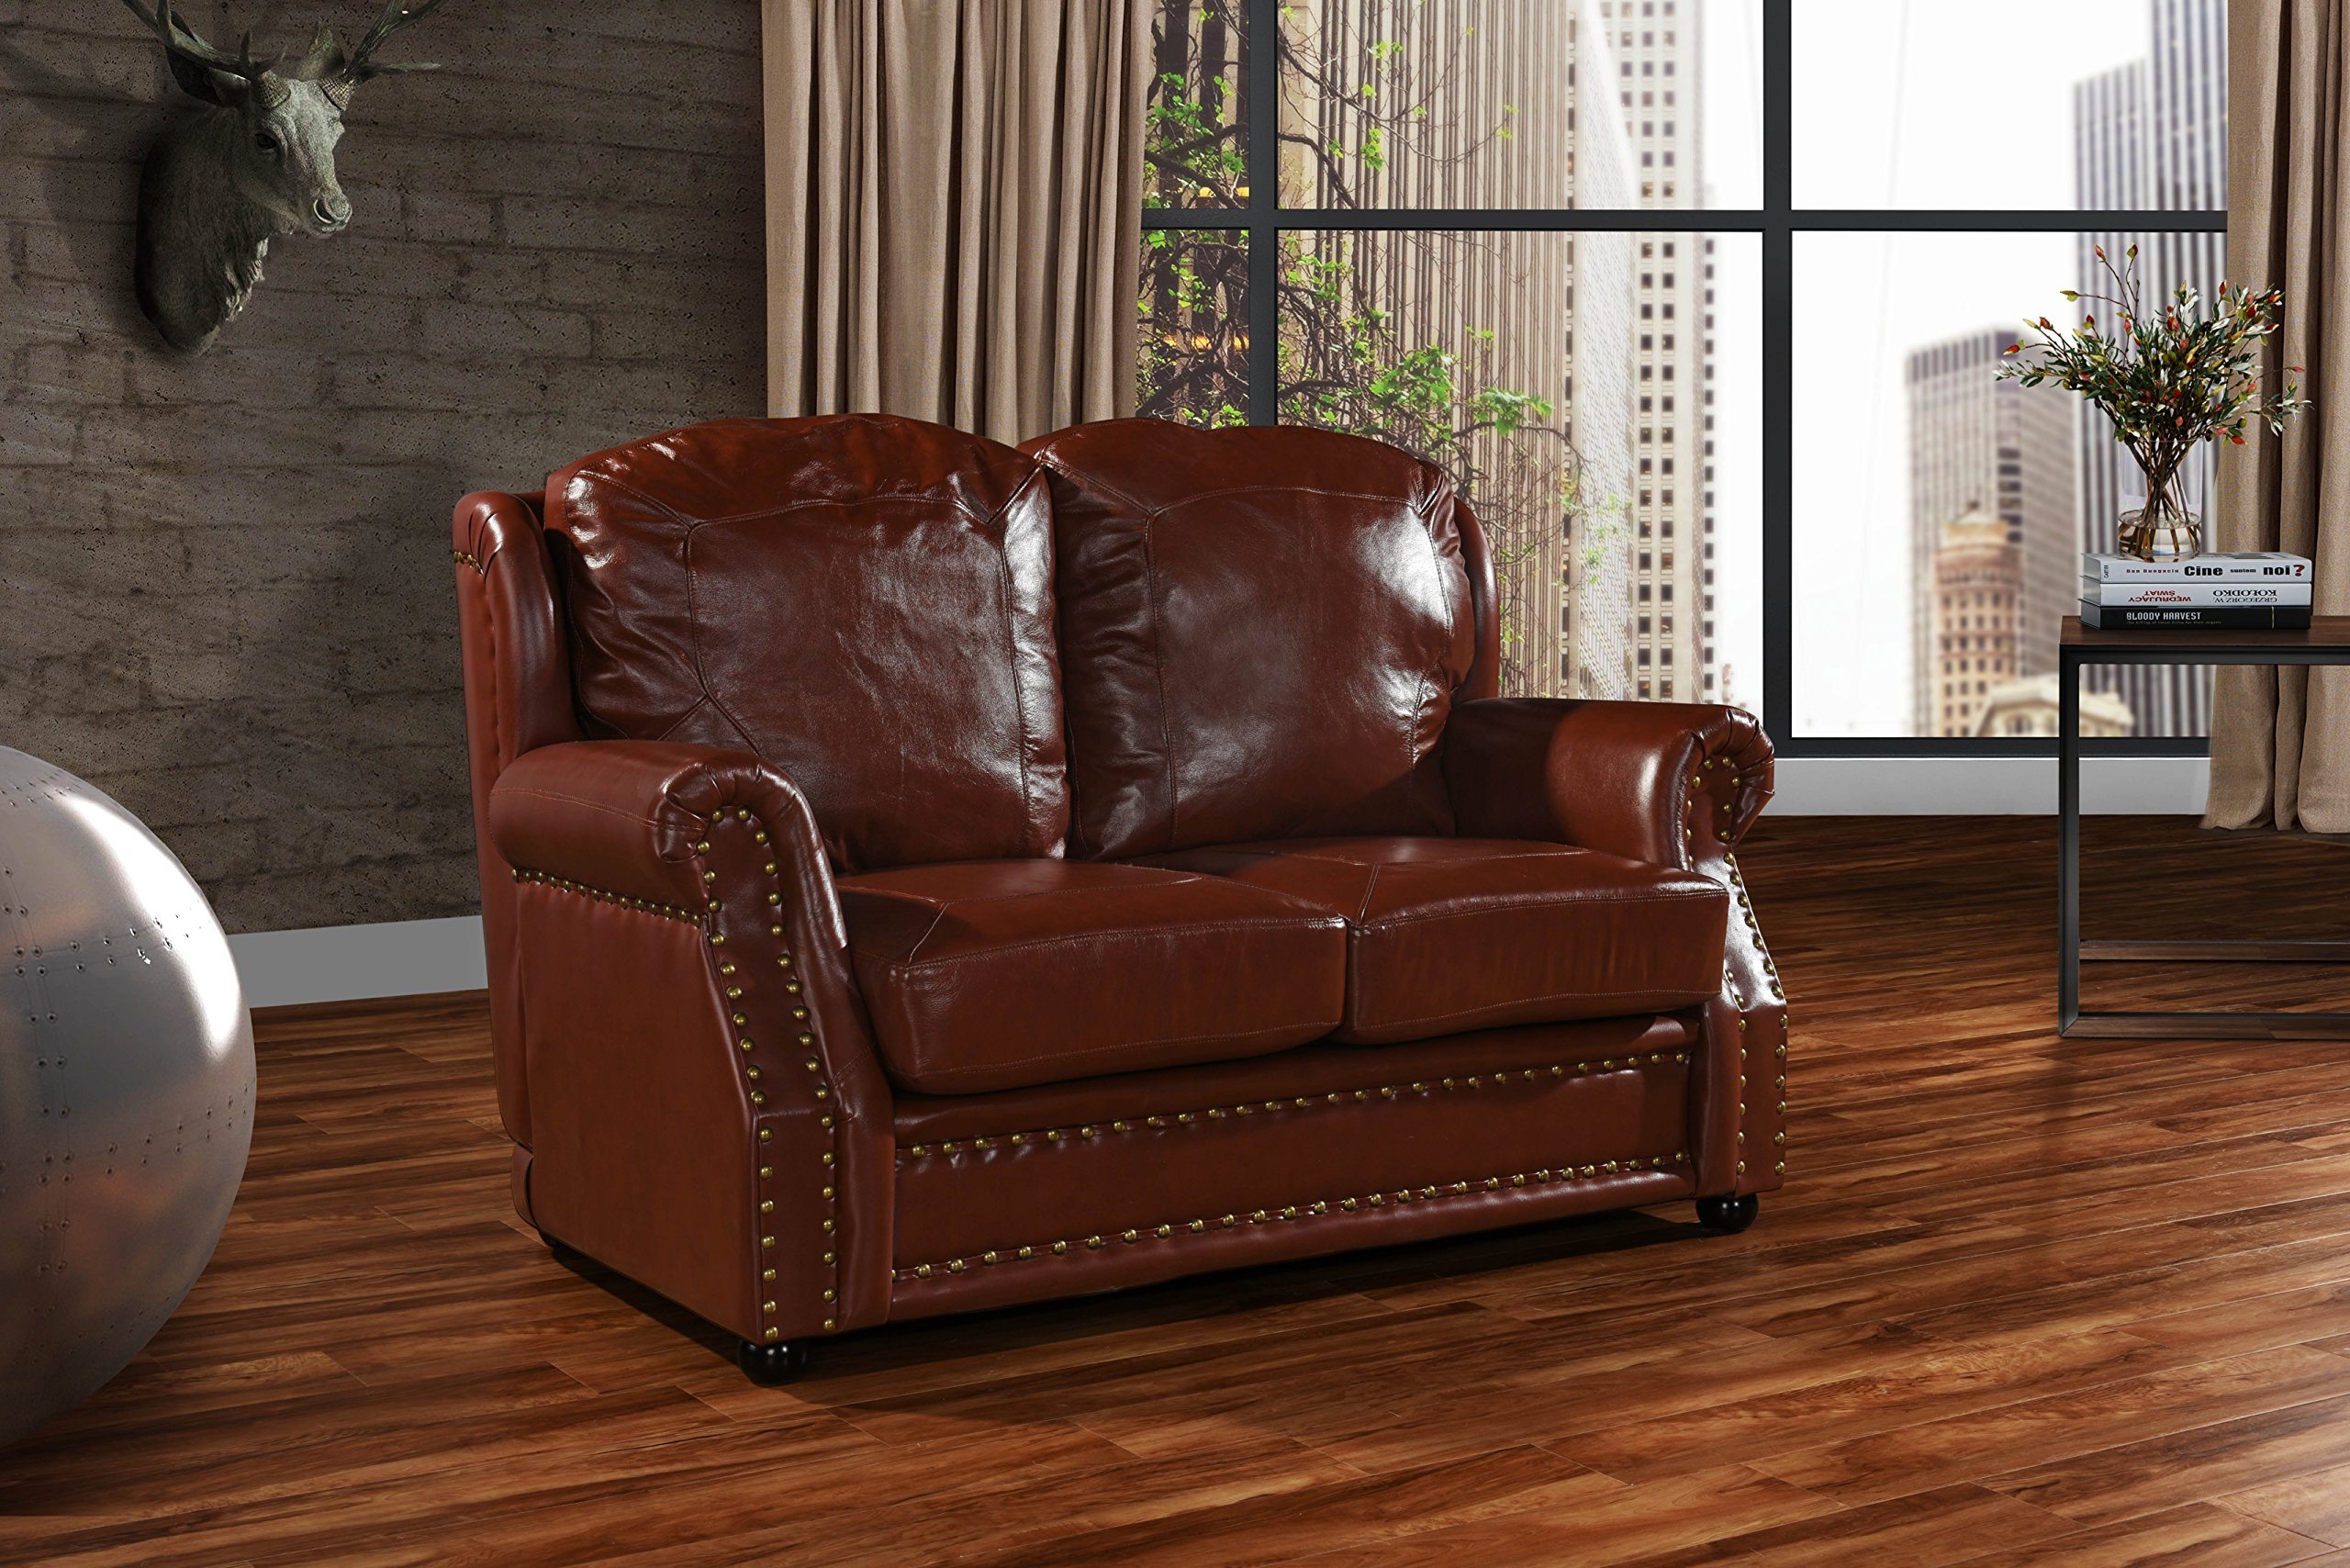 Leather Sofa 2 Seater, Living Room Couch Loveseat with Nailhead Trim (Light Brown)